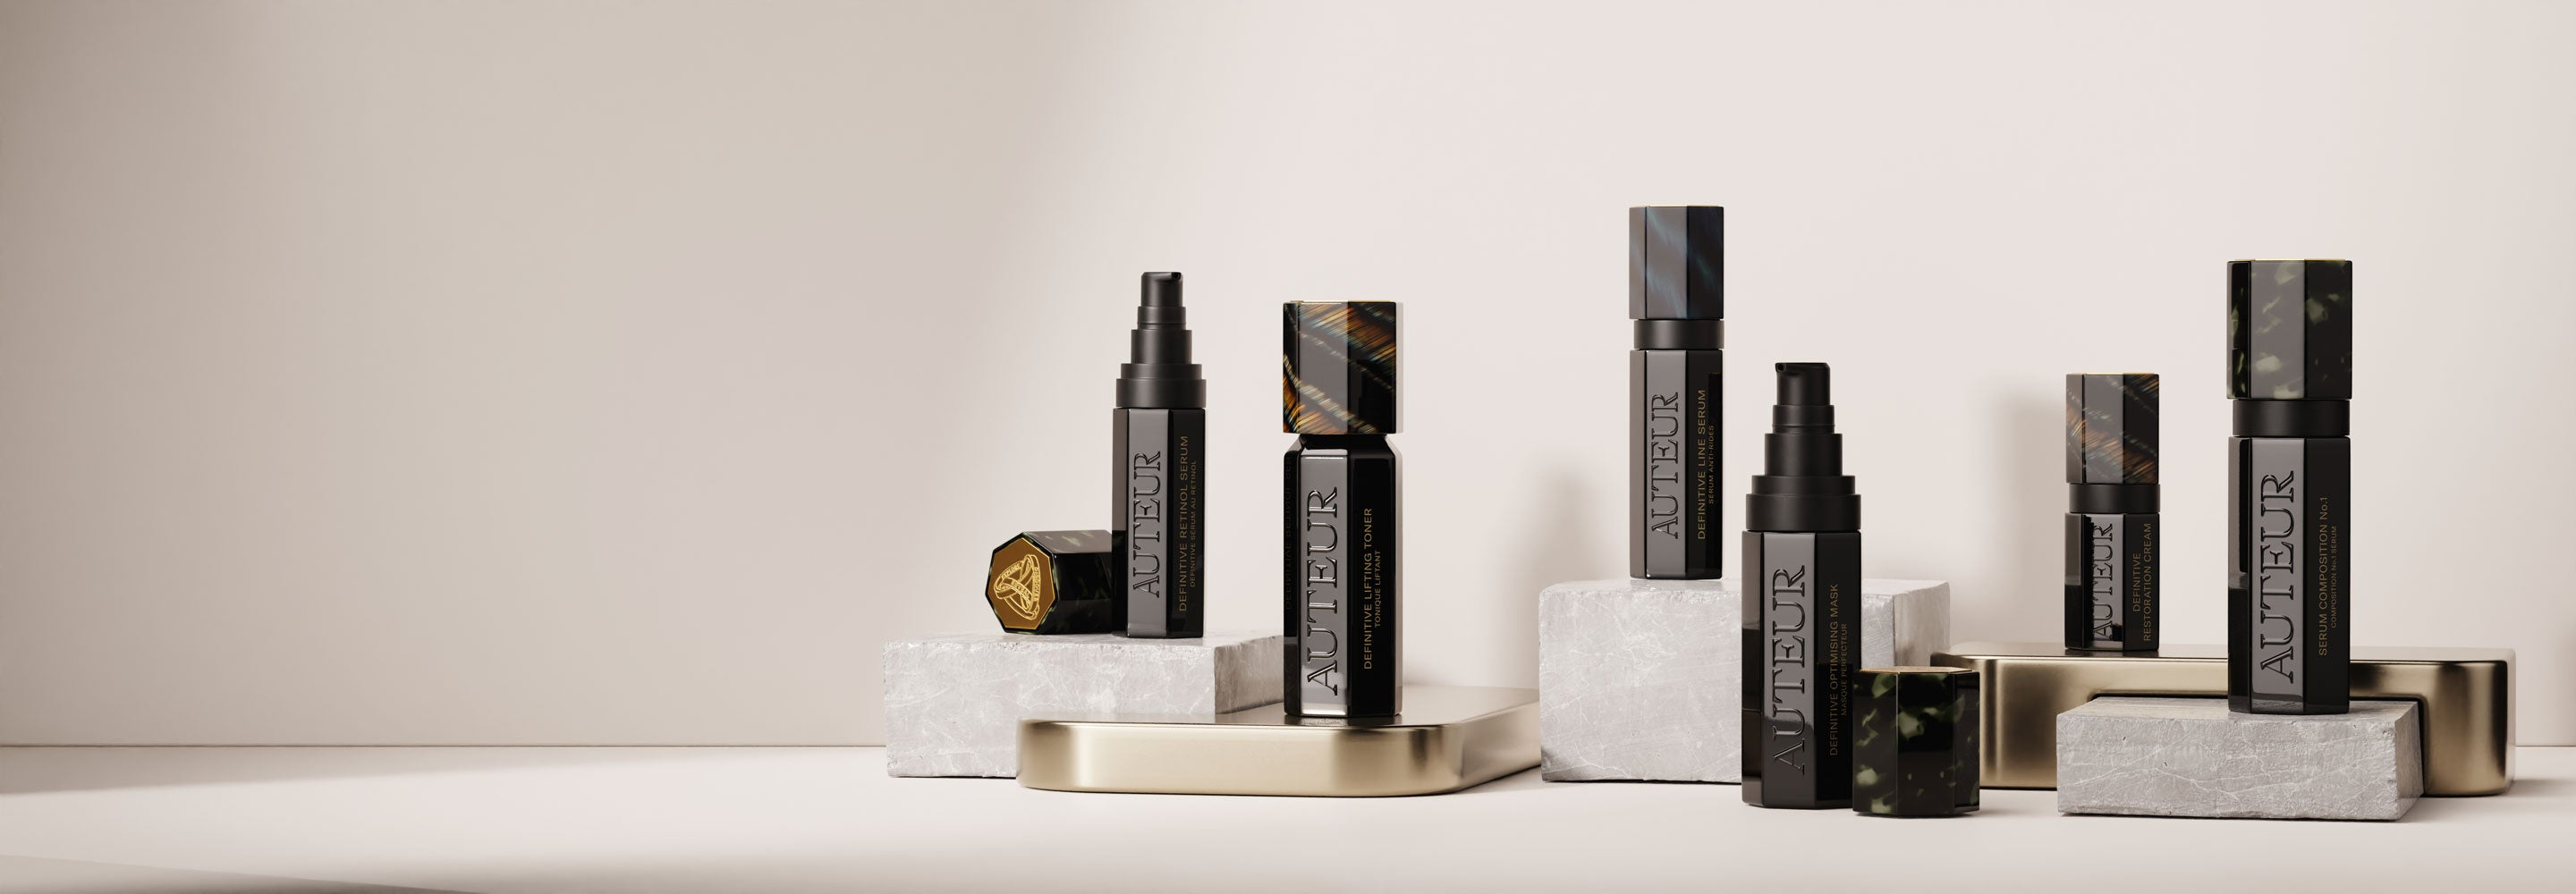 High-active compositions elevating skincare to an art form and your deepest authentic beauty to your surface.